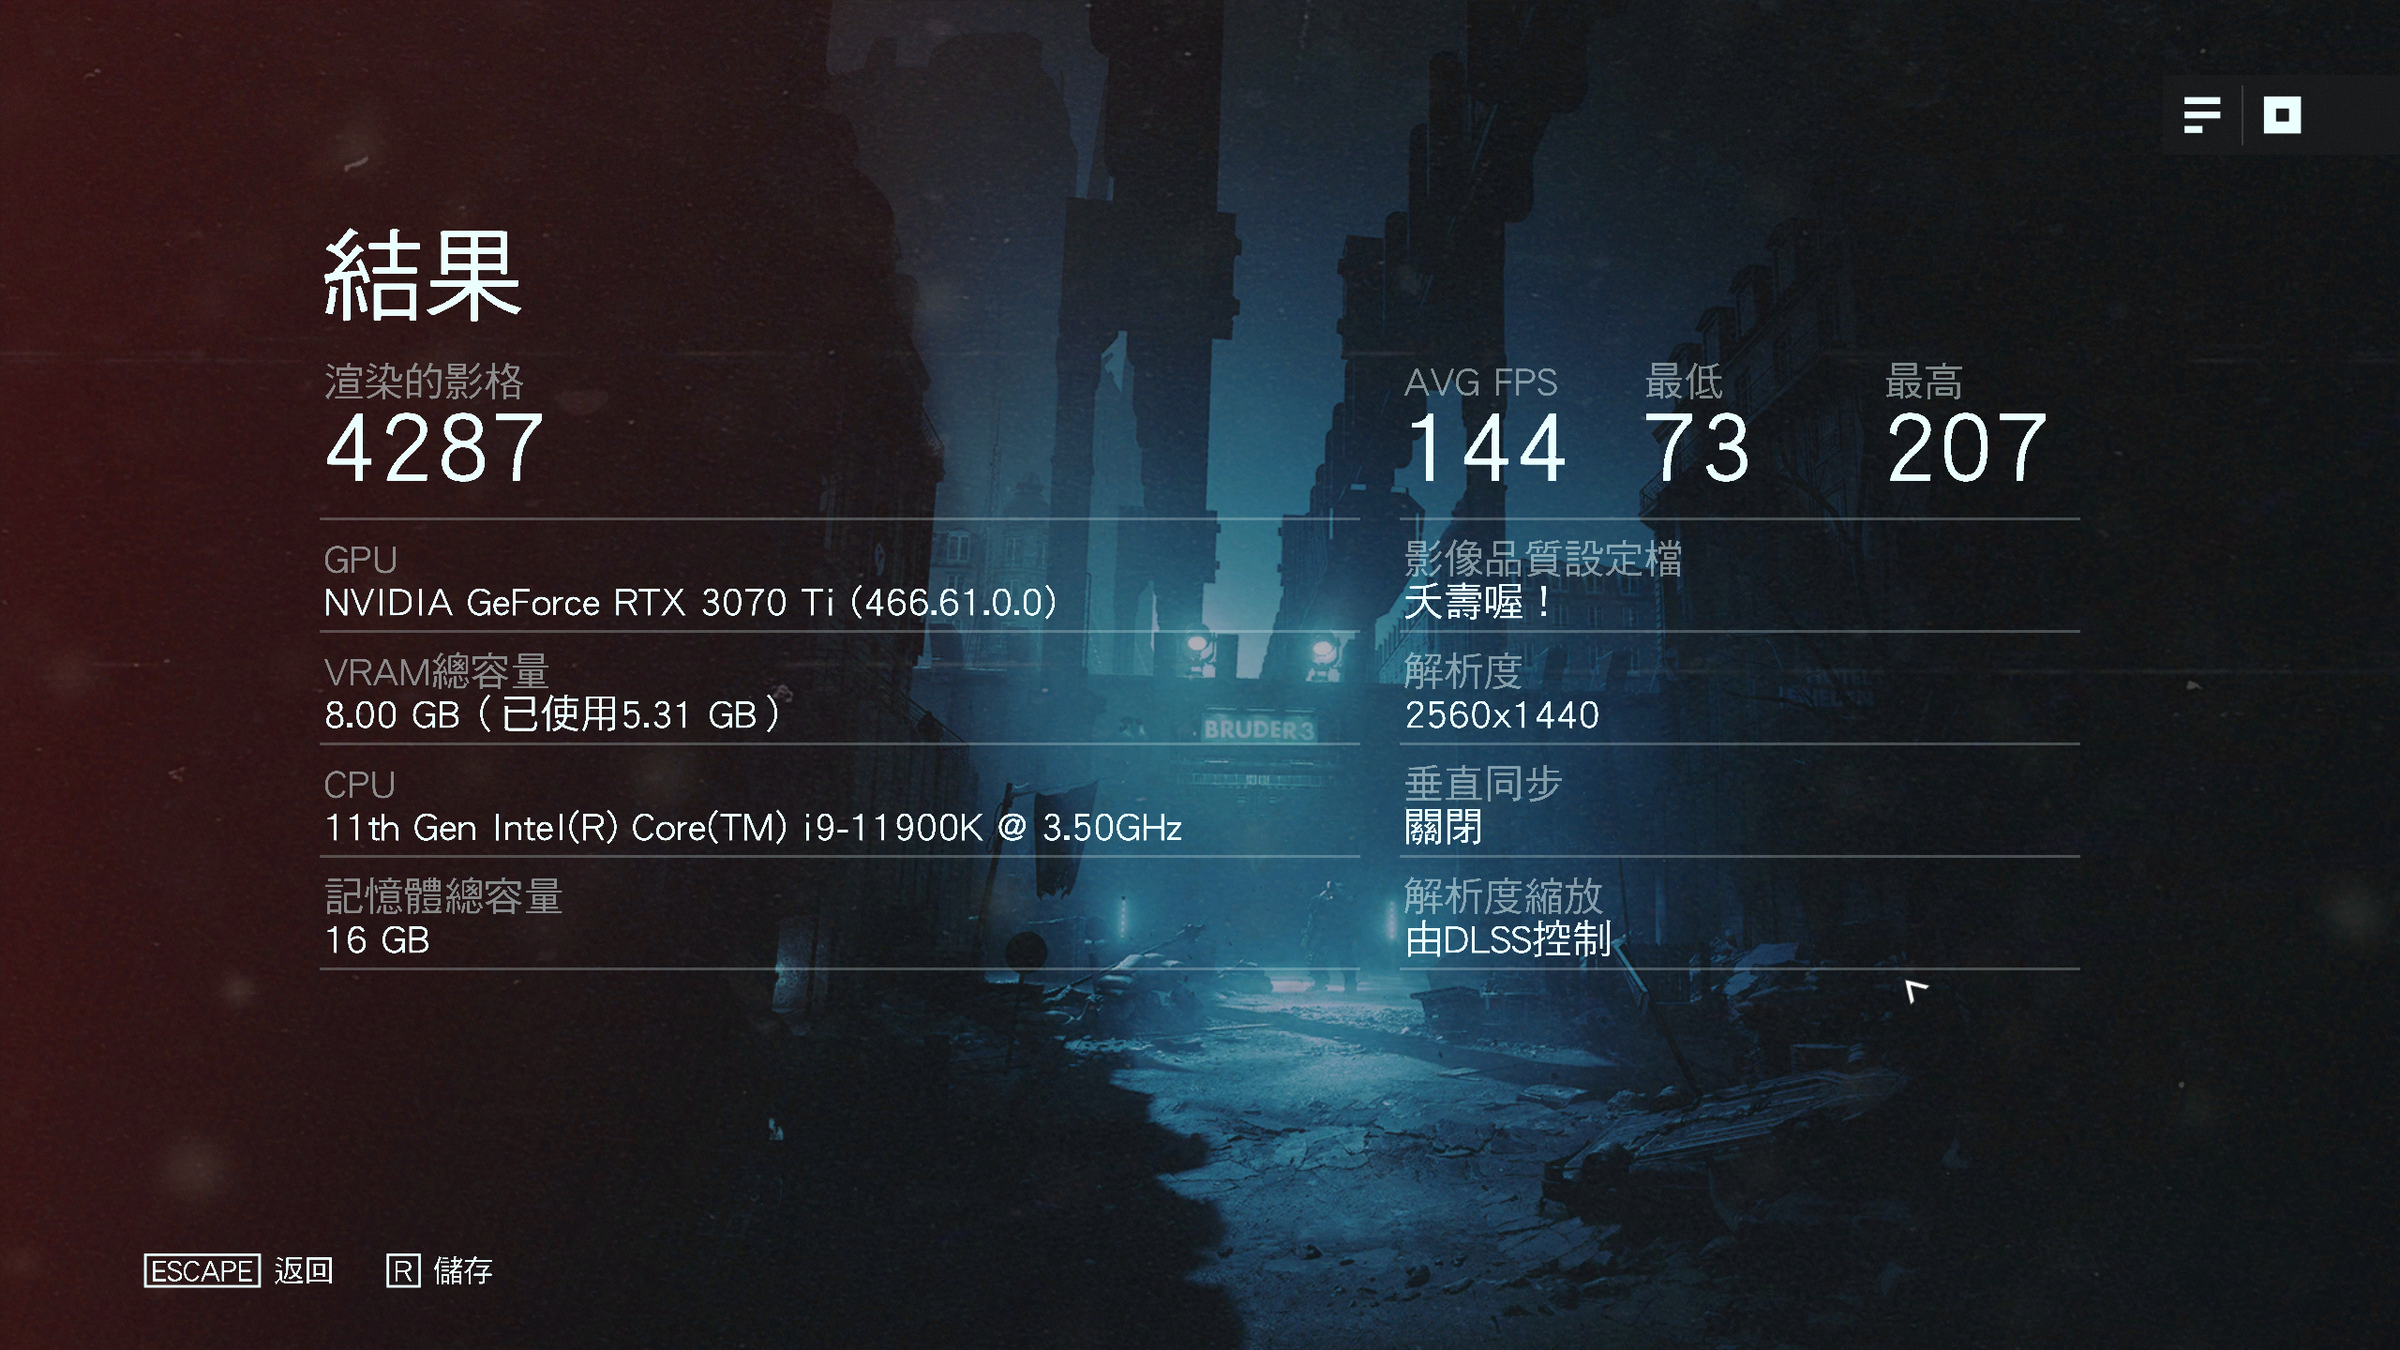 The results, rendered frames, AVG FPS are mentioned in the photo, including NVIDIA GeForce RTX, NVIDIA GeForce RTX 3070, NVIDIA GeForce RTX 3090, NVIDIA, NVIDIA